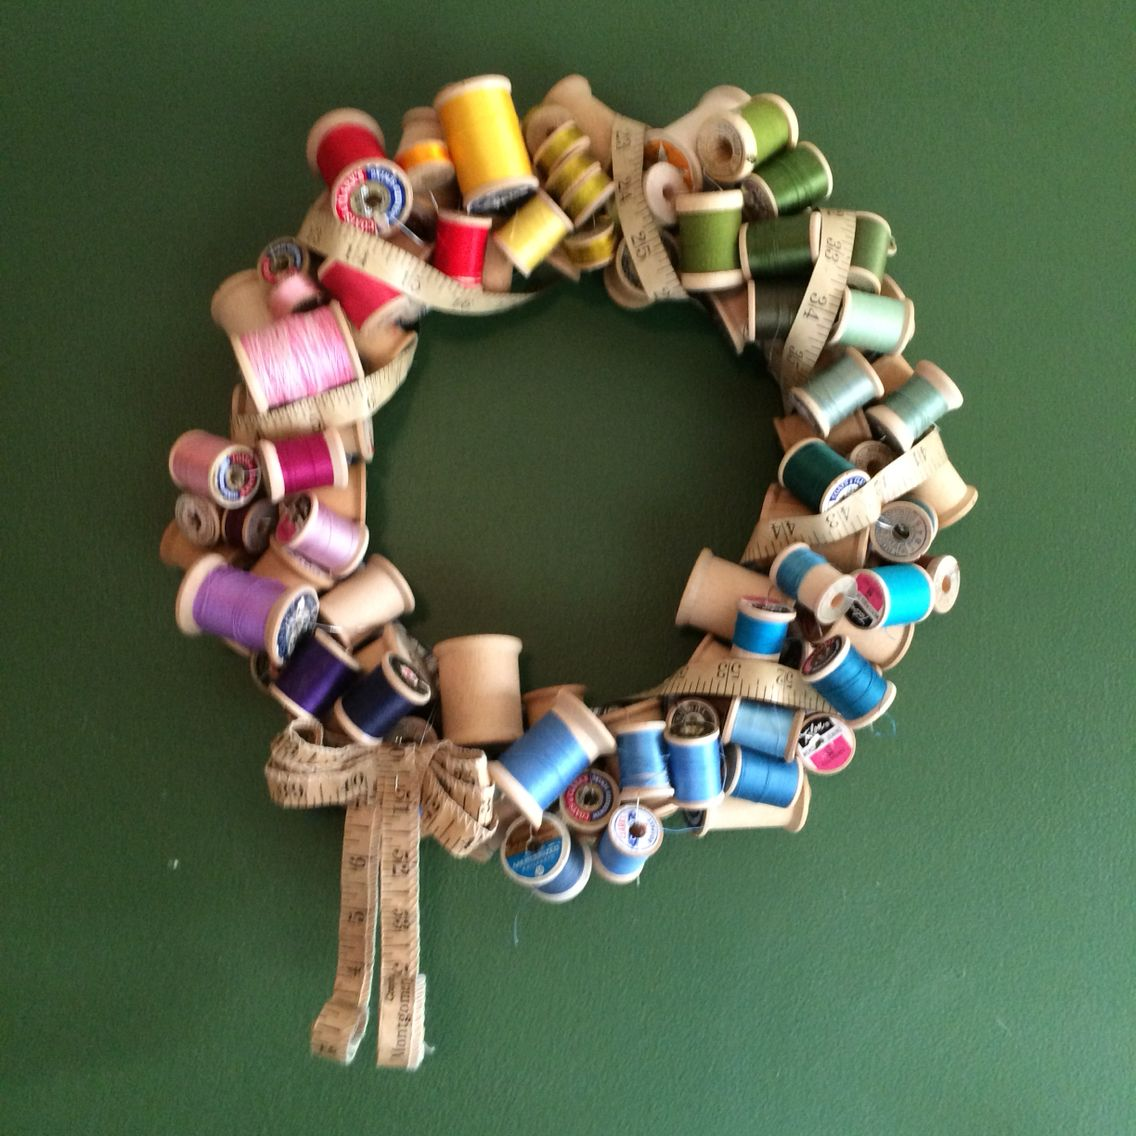 My Vintage spool wreath. I wired old spools to a fabric